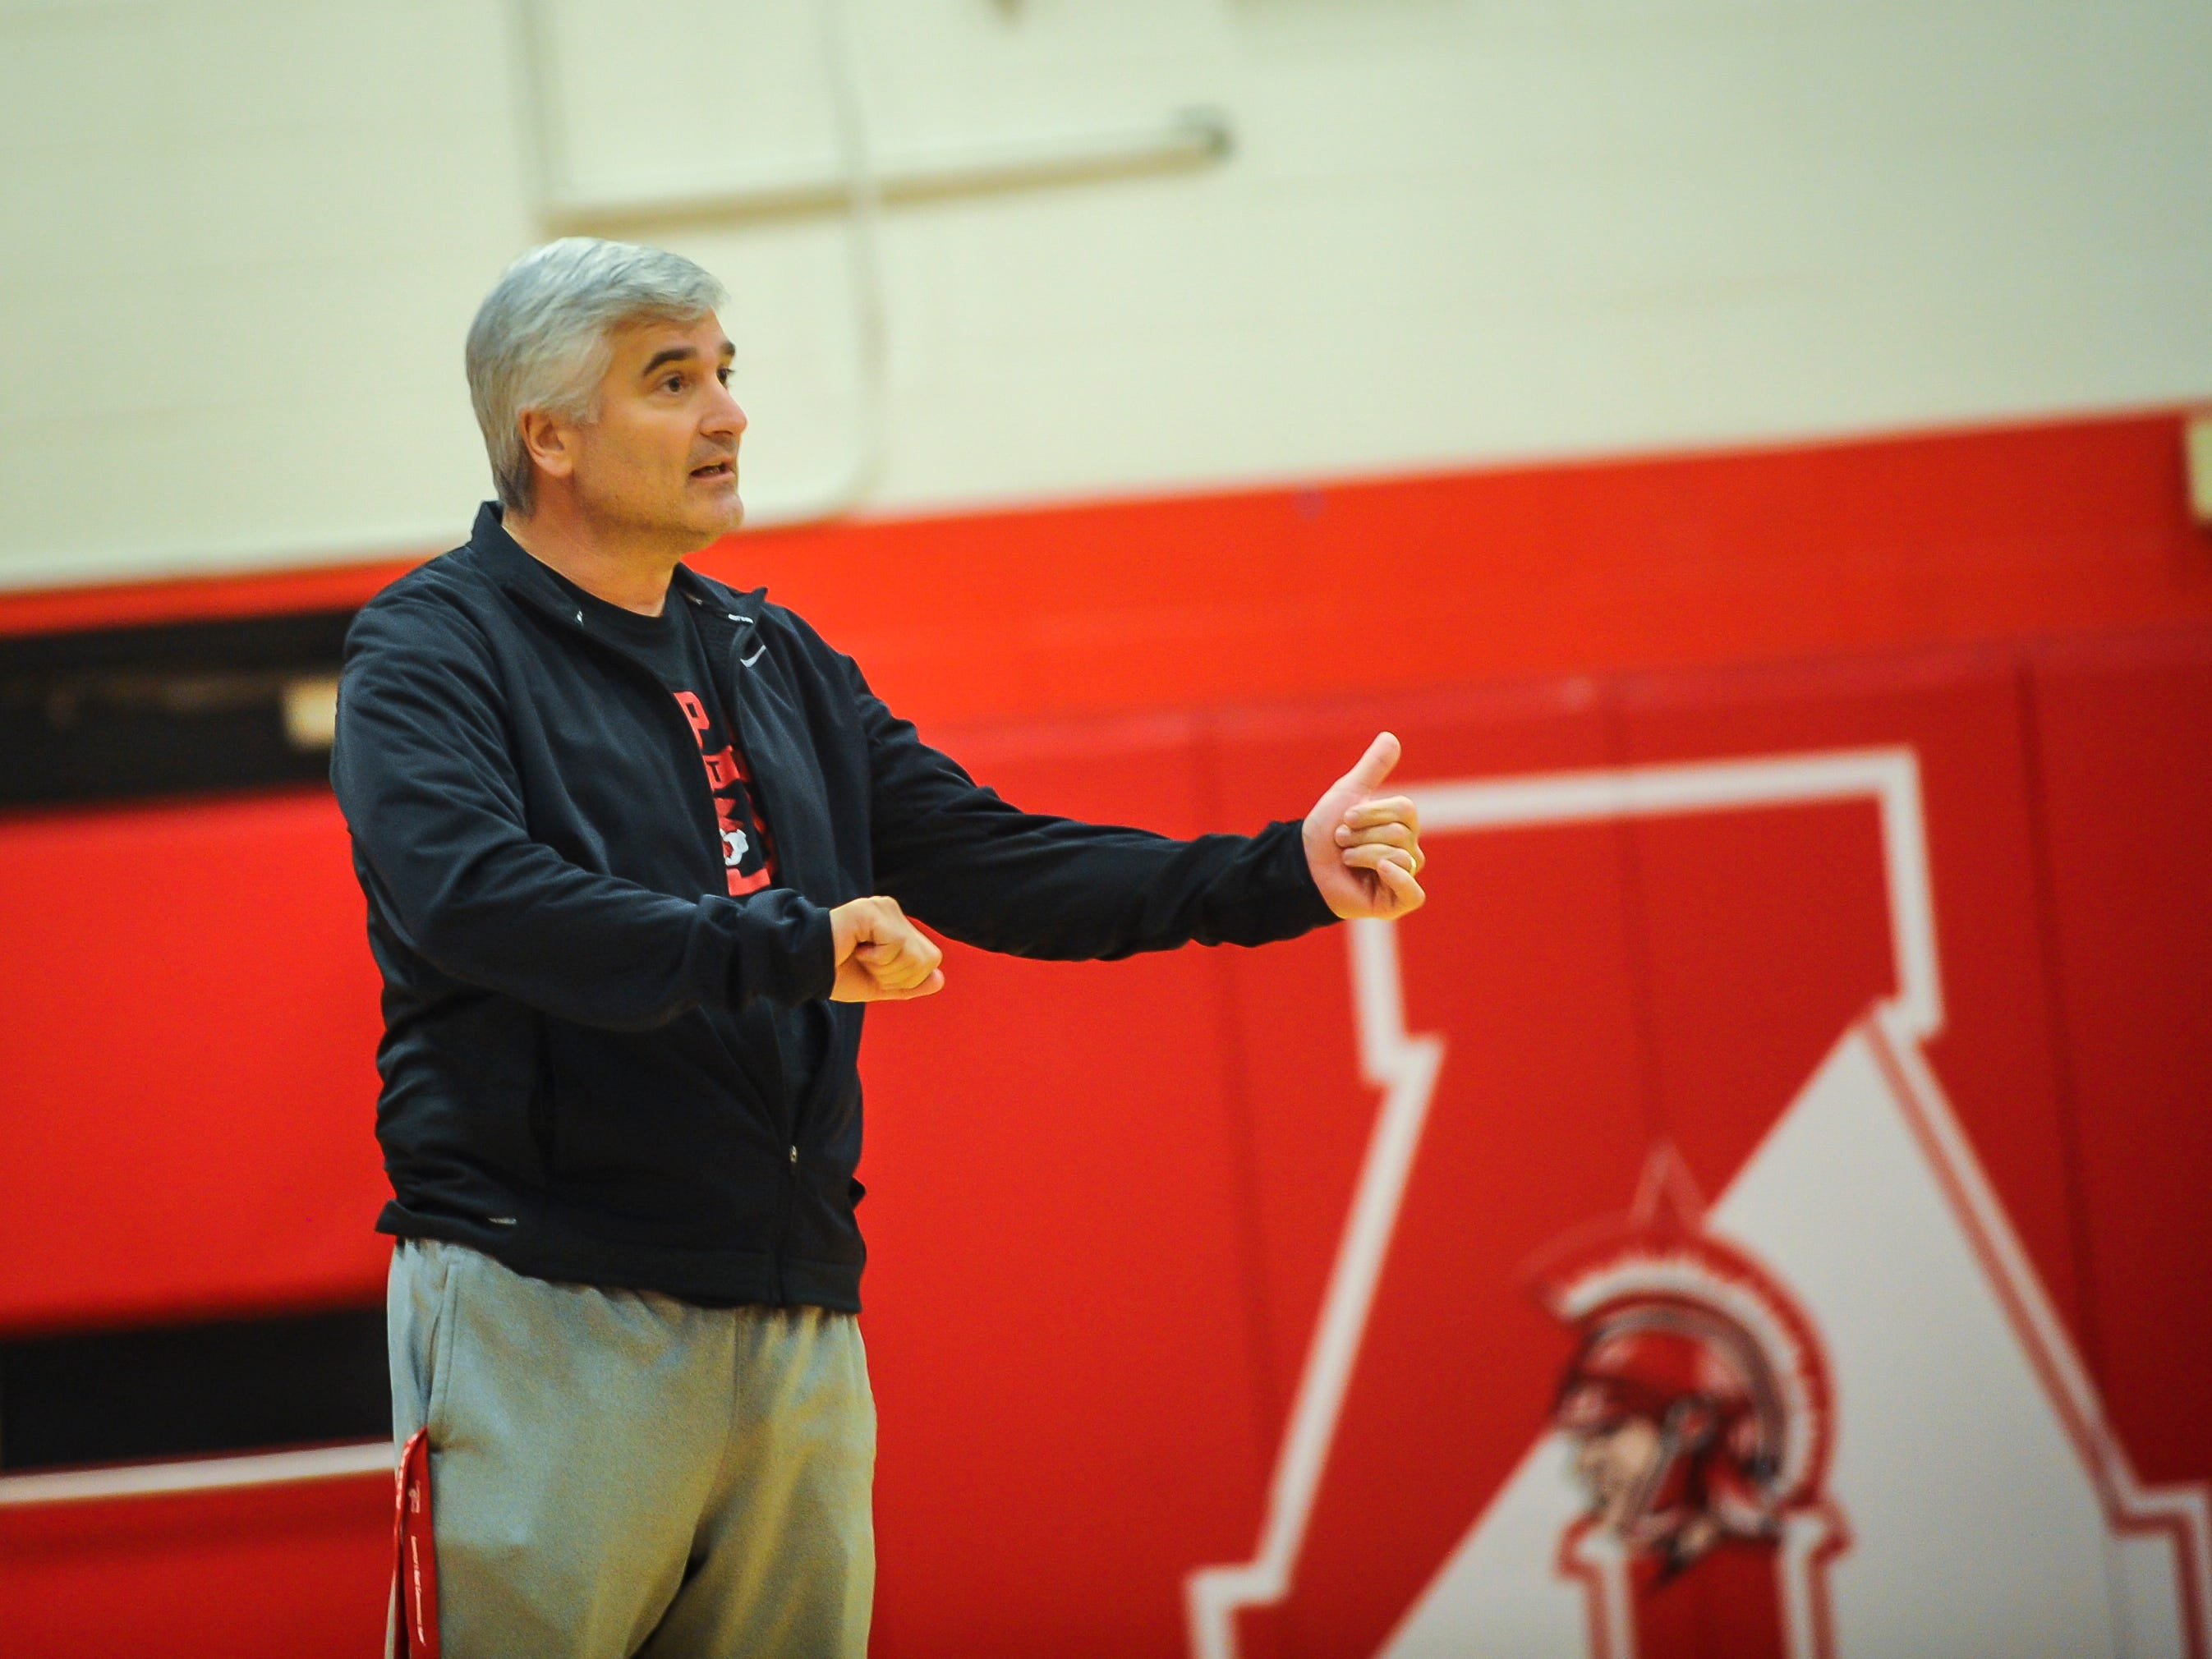 Bishop Ahr boys basketball head coach Bob Turco gives instructions during a scrimmage against Immaculata on Saturday, Dec. 8, 2018 in Edison.